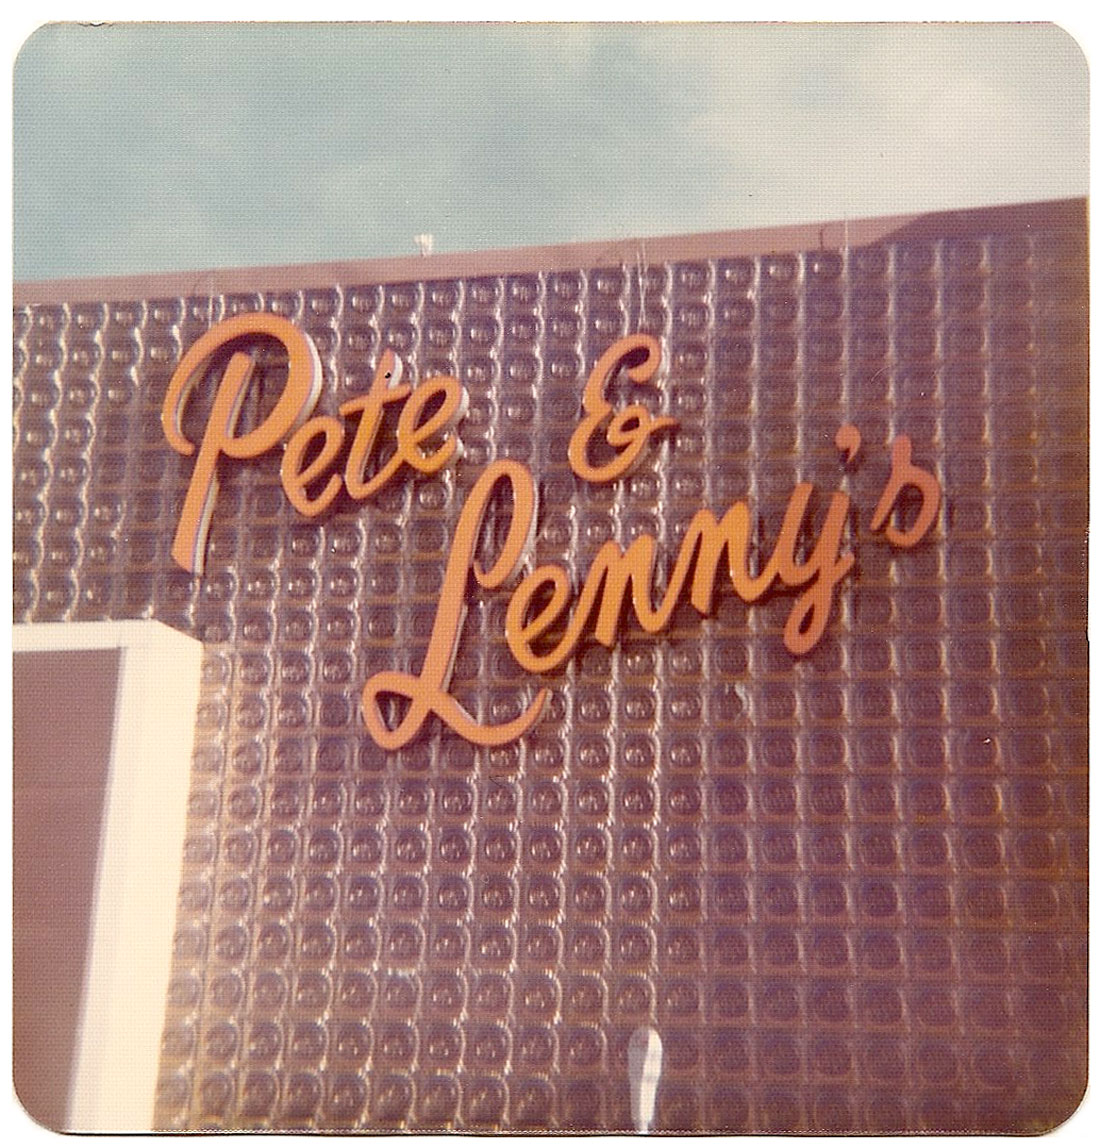 Pete & Lenny's sign